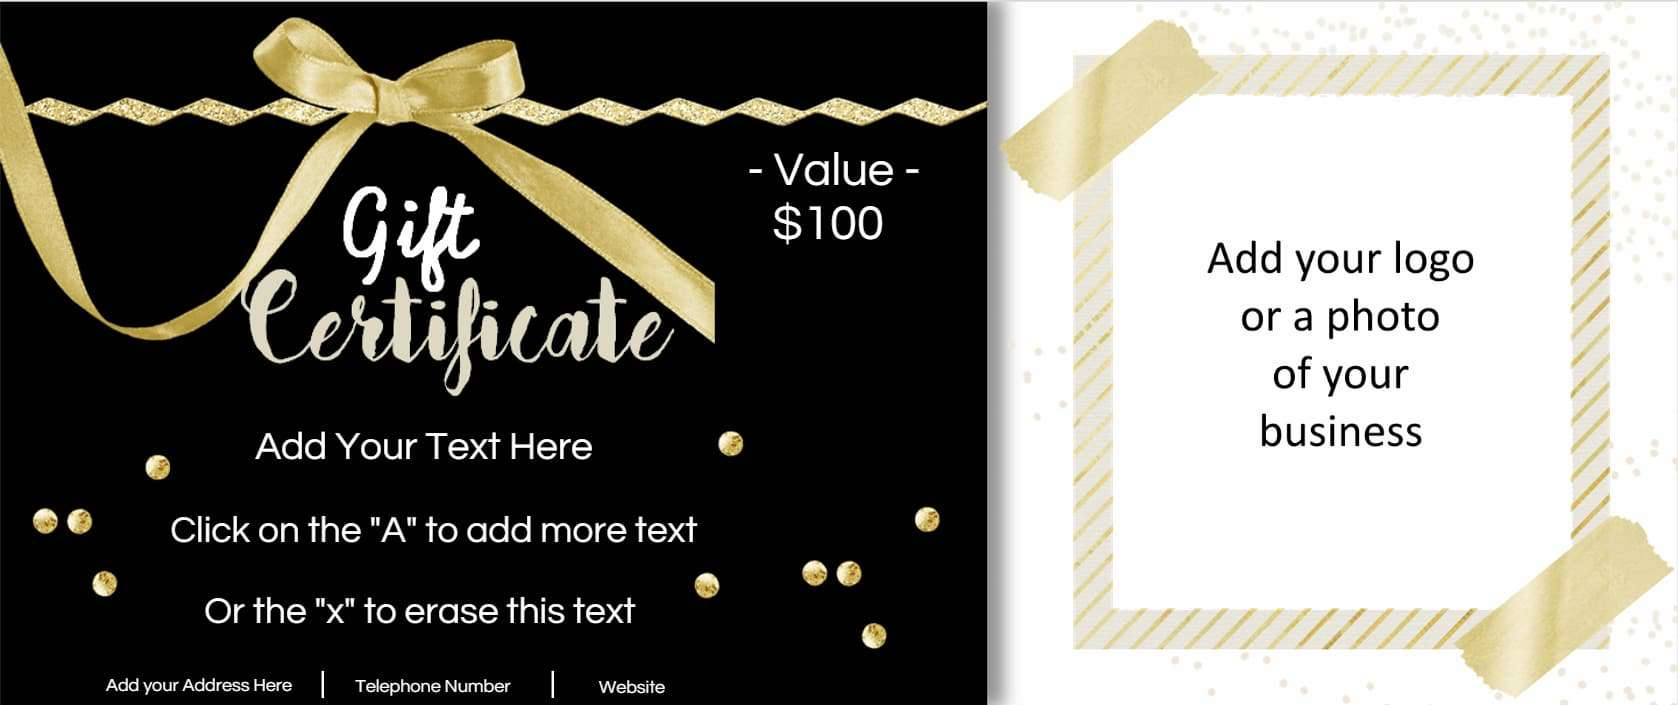 Gift certificate template with logo customize print yelopaper Images